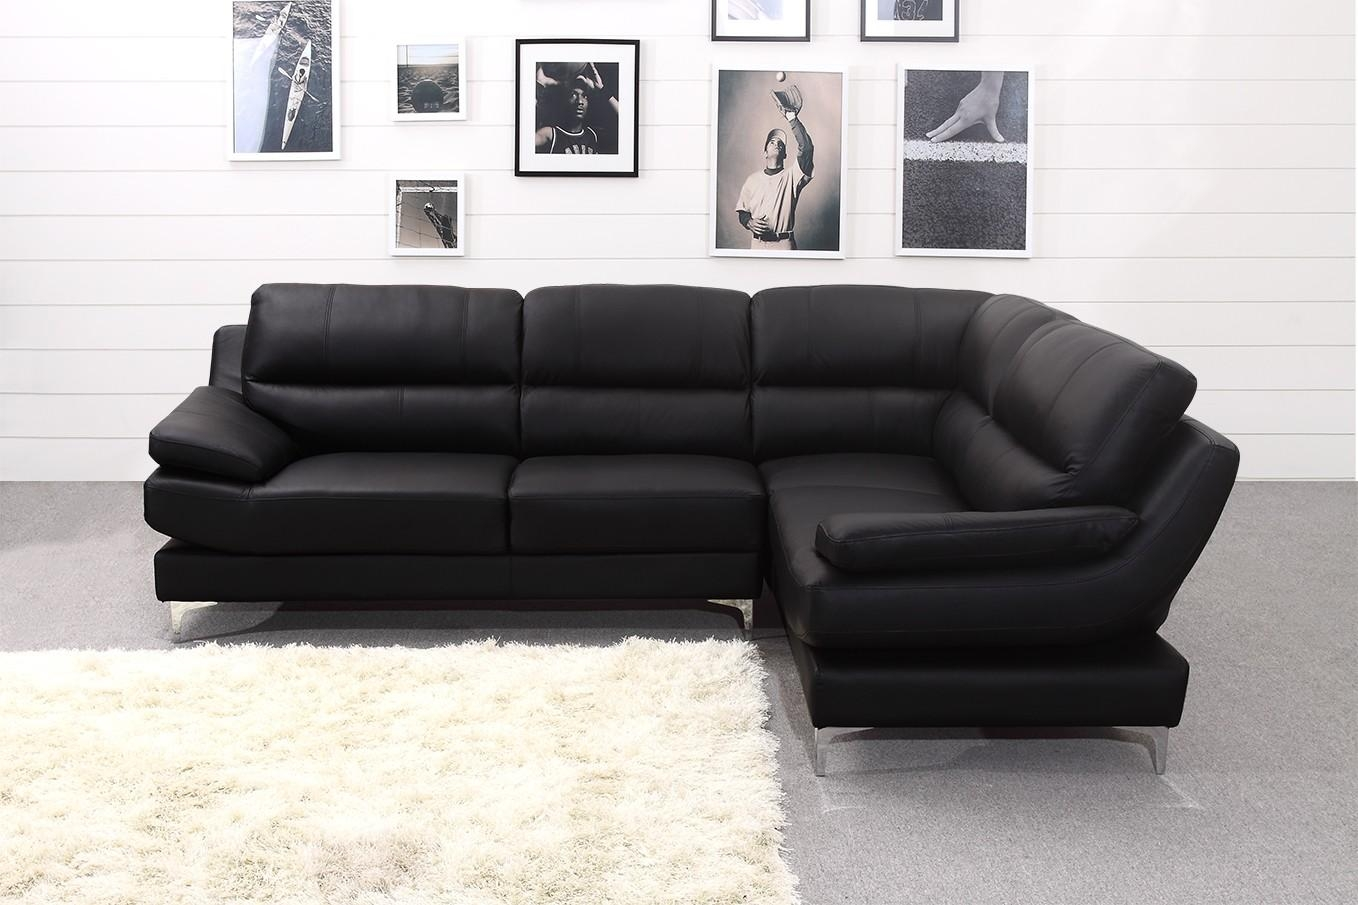 Black Corner Sofa And Leather Corner Sofa Black White Montana With Large Black Leather Corner Sofas (View 7 of 22)